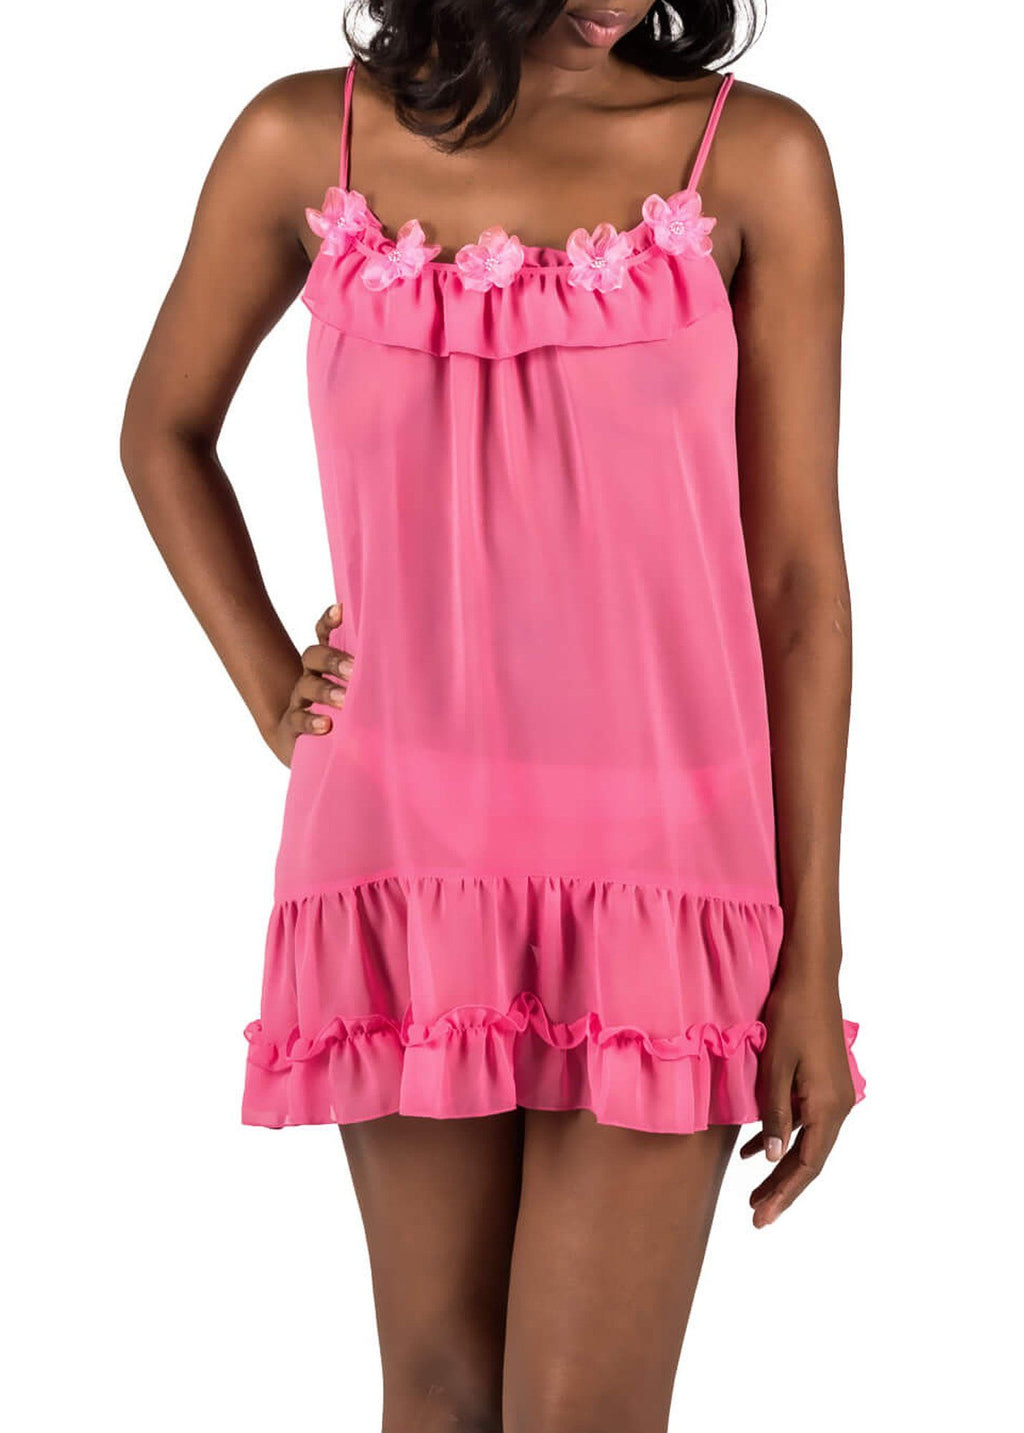 Sophie Sheer Babydoll - Pink Carnation Mystique Intimates